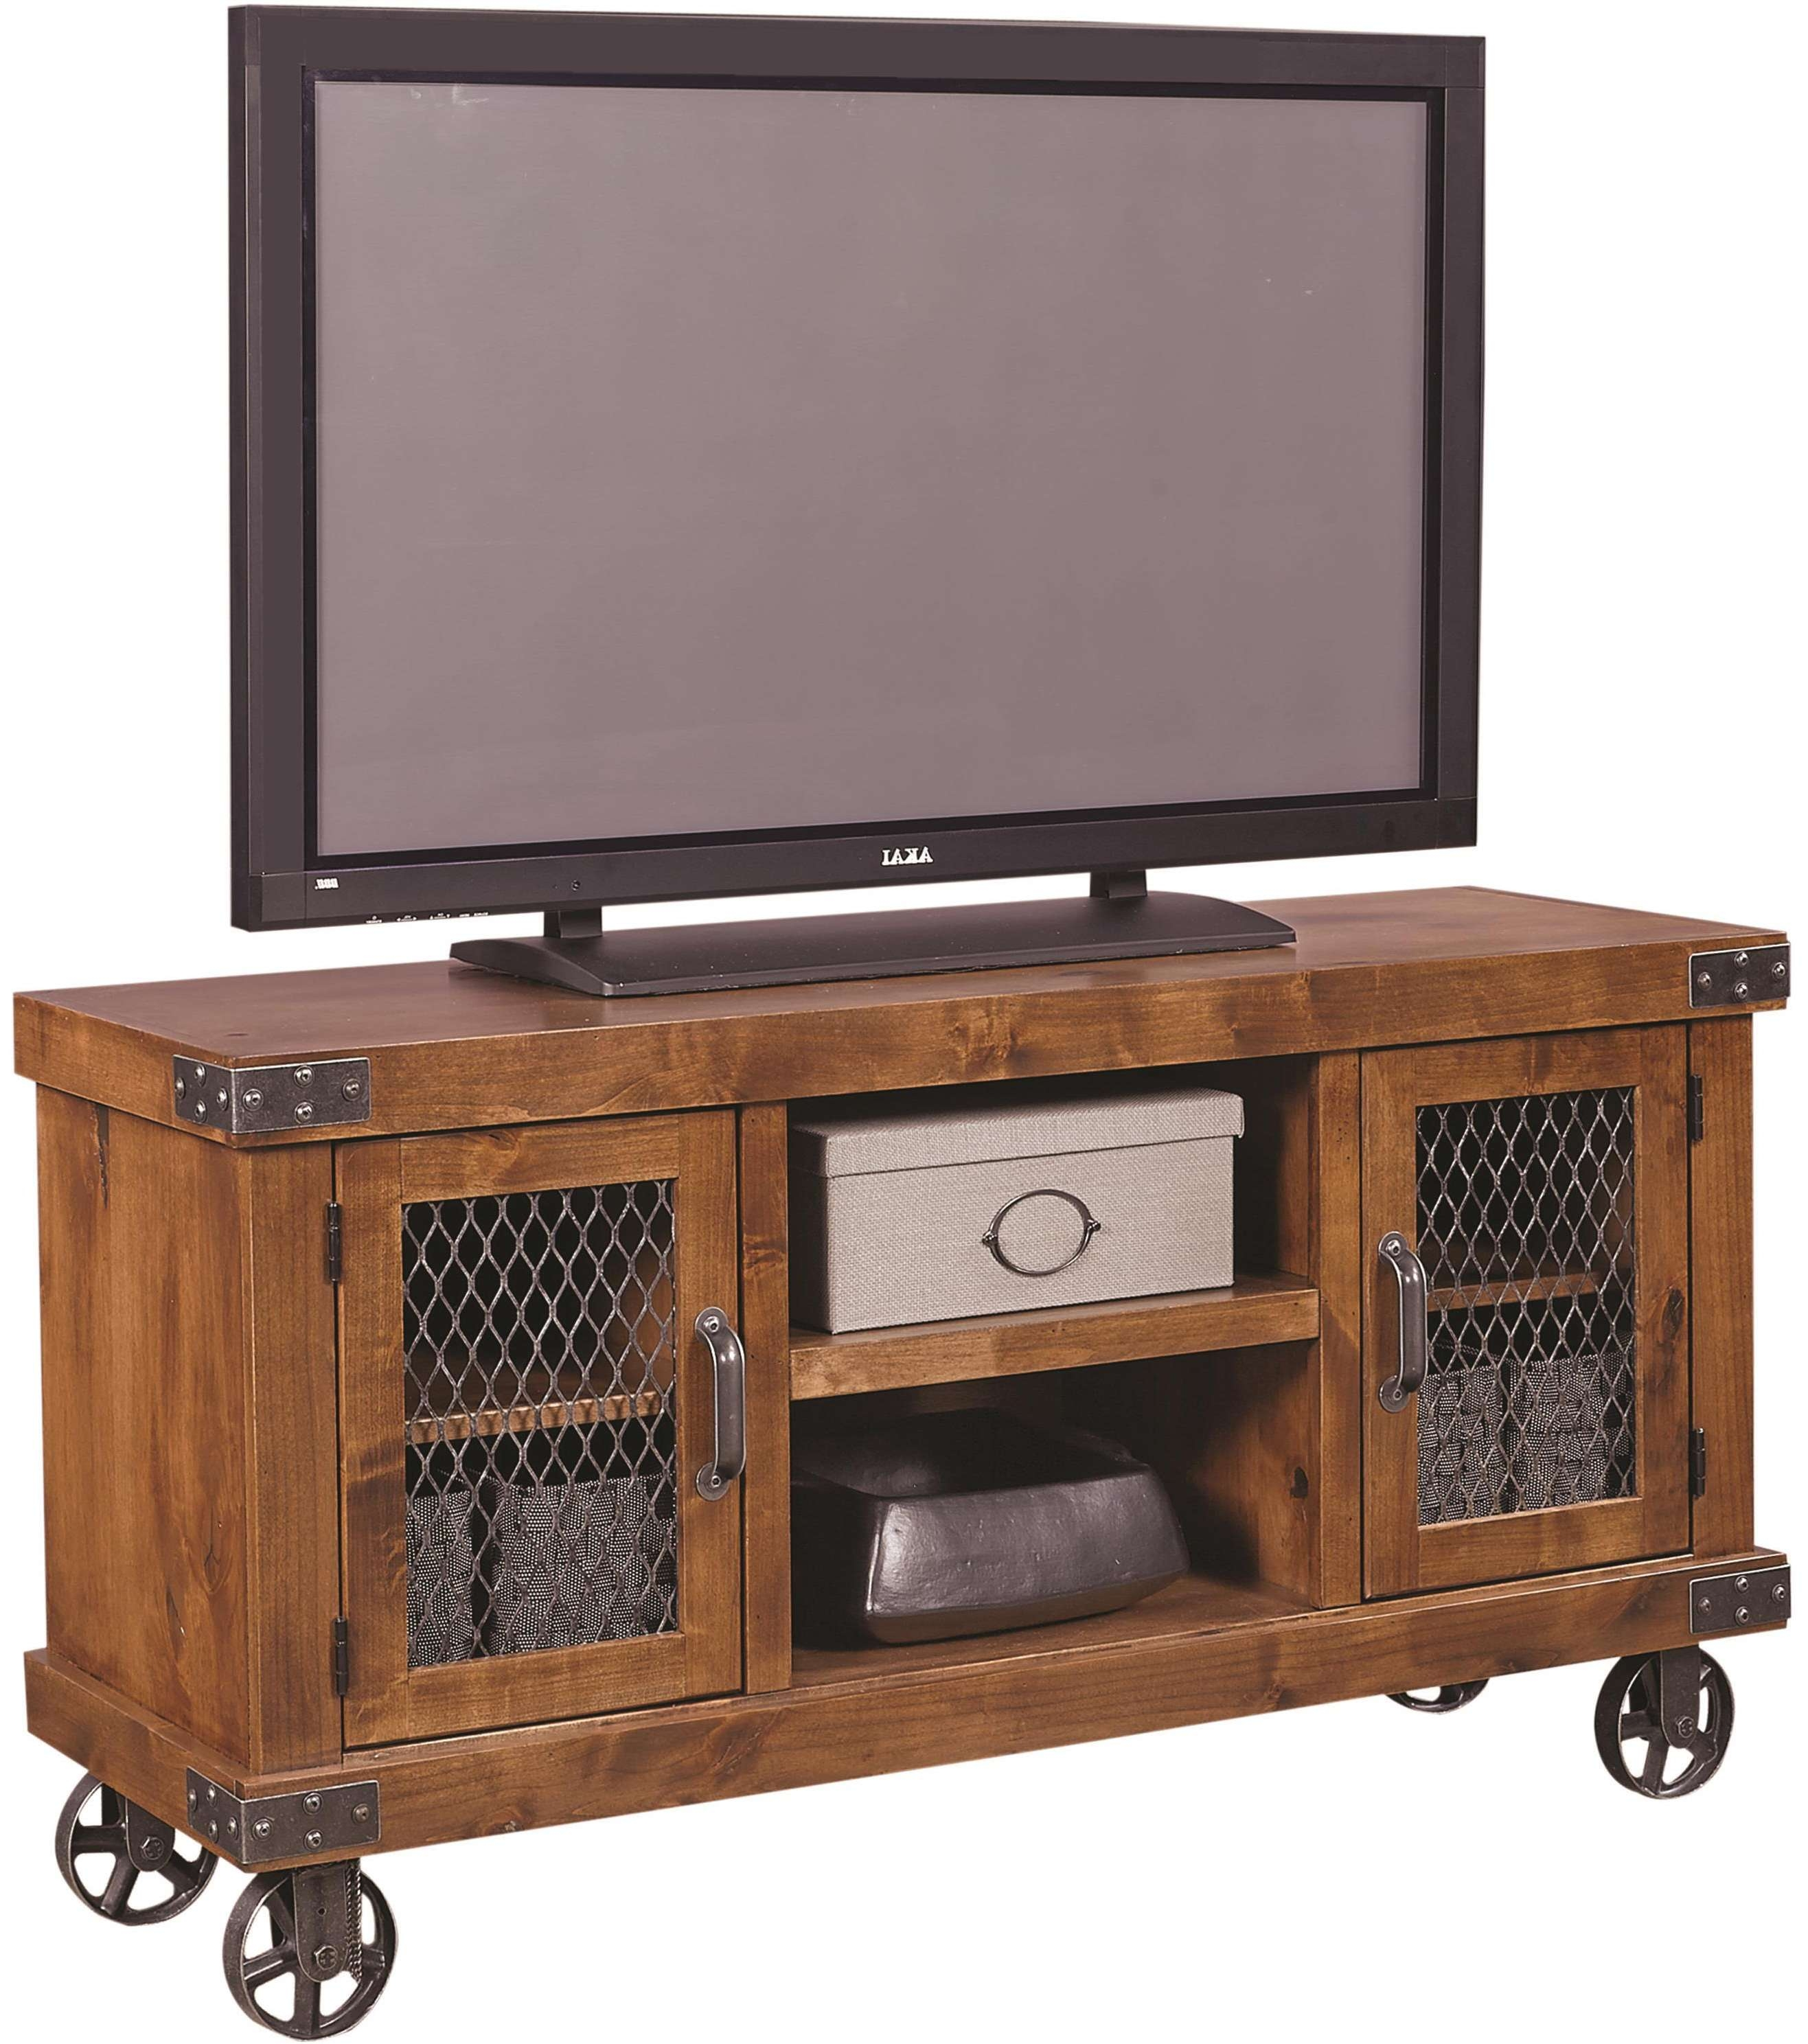 "Aspenhome Industrial 55"" Console With Metal Casters 